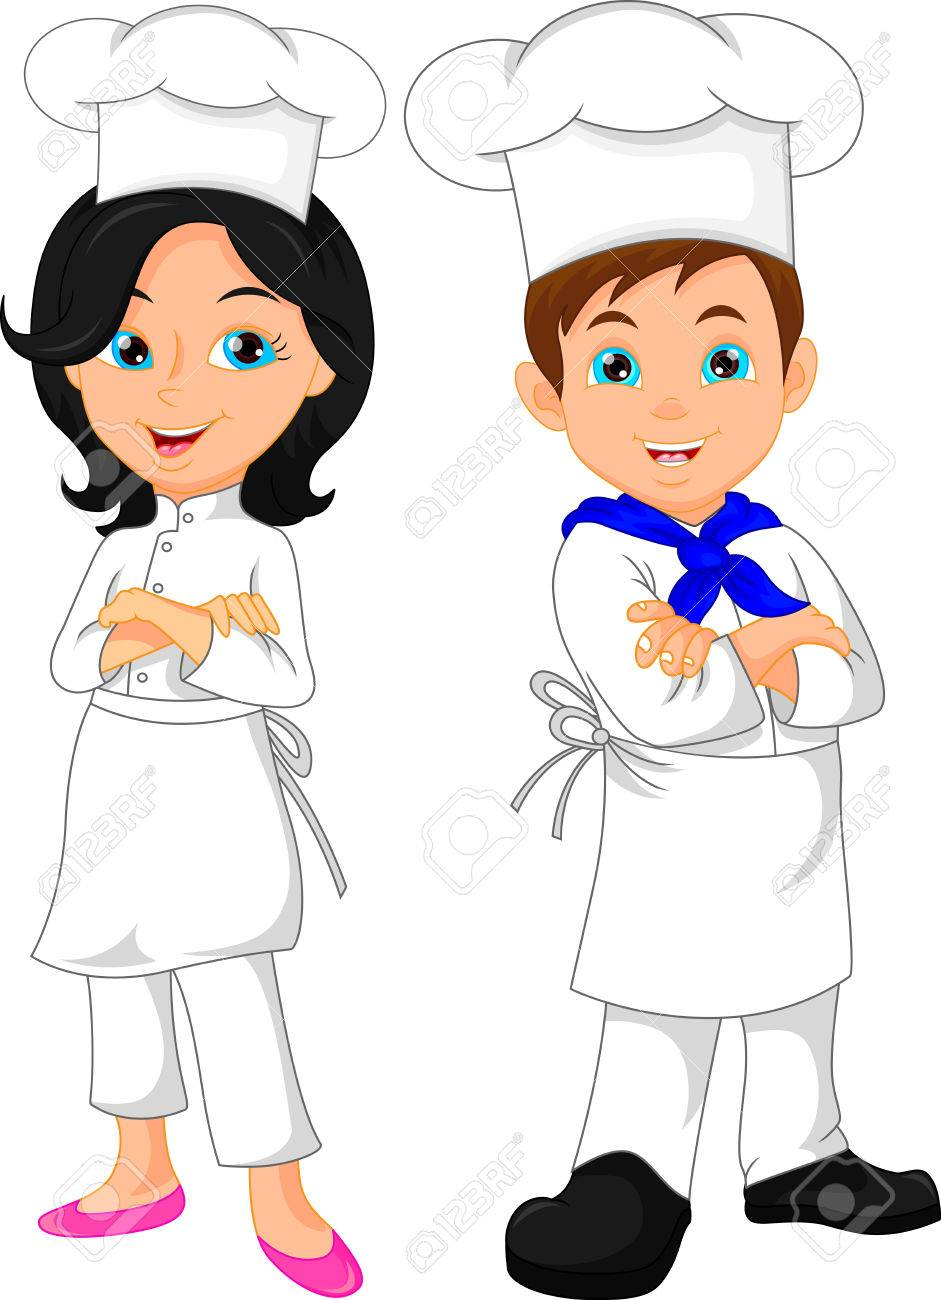 boy and girl chef